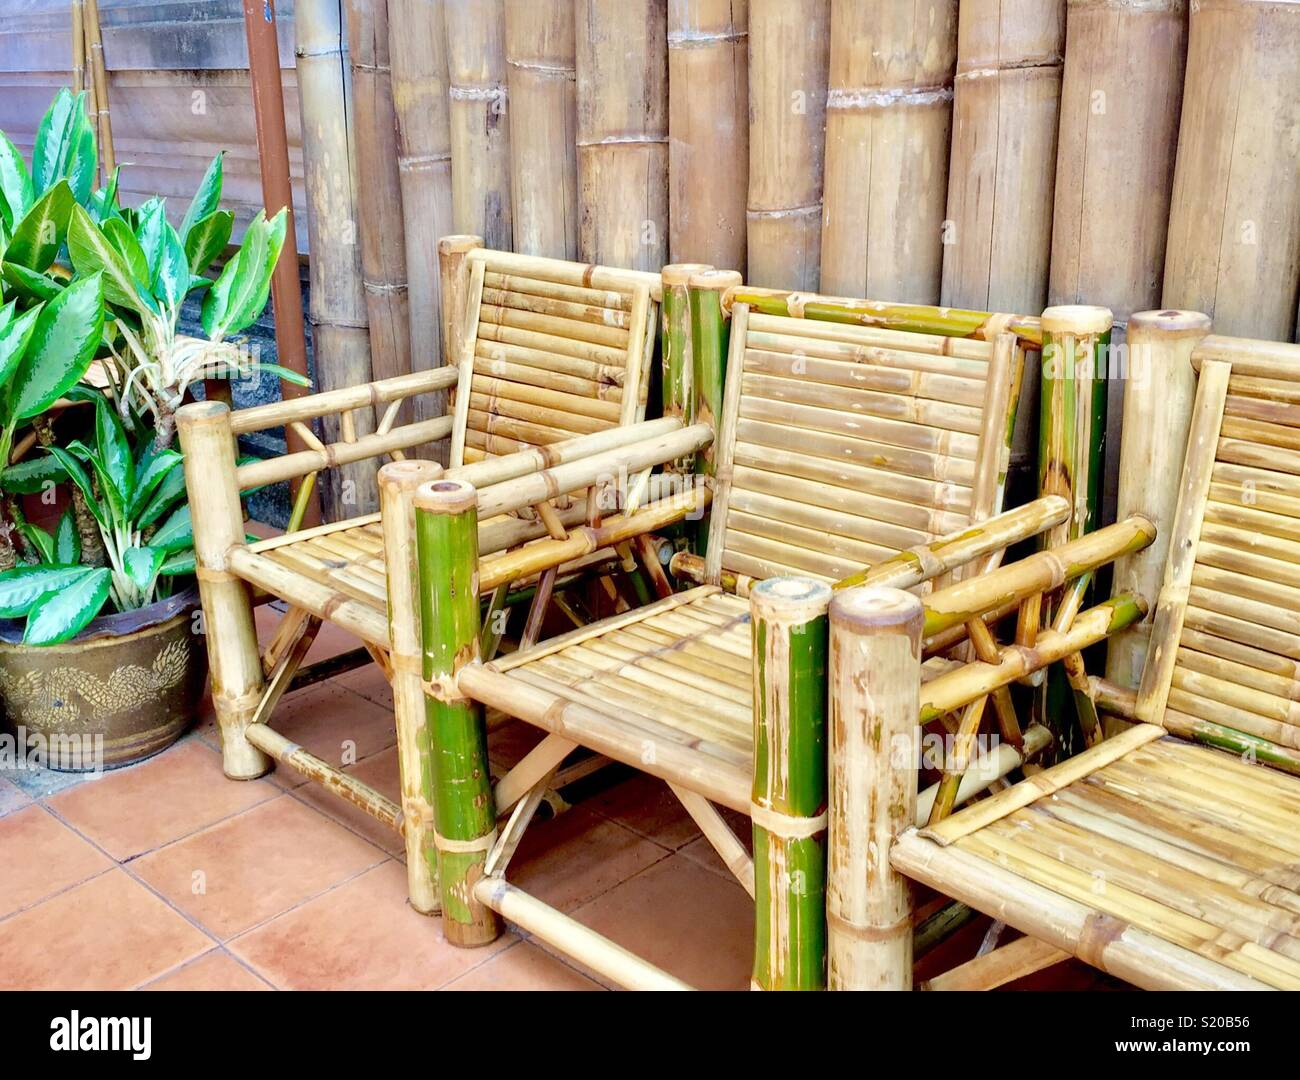 Bamboo Chair Stock Photos  Bamboo Chair Stock Images  Alamy